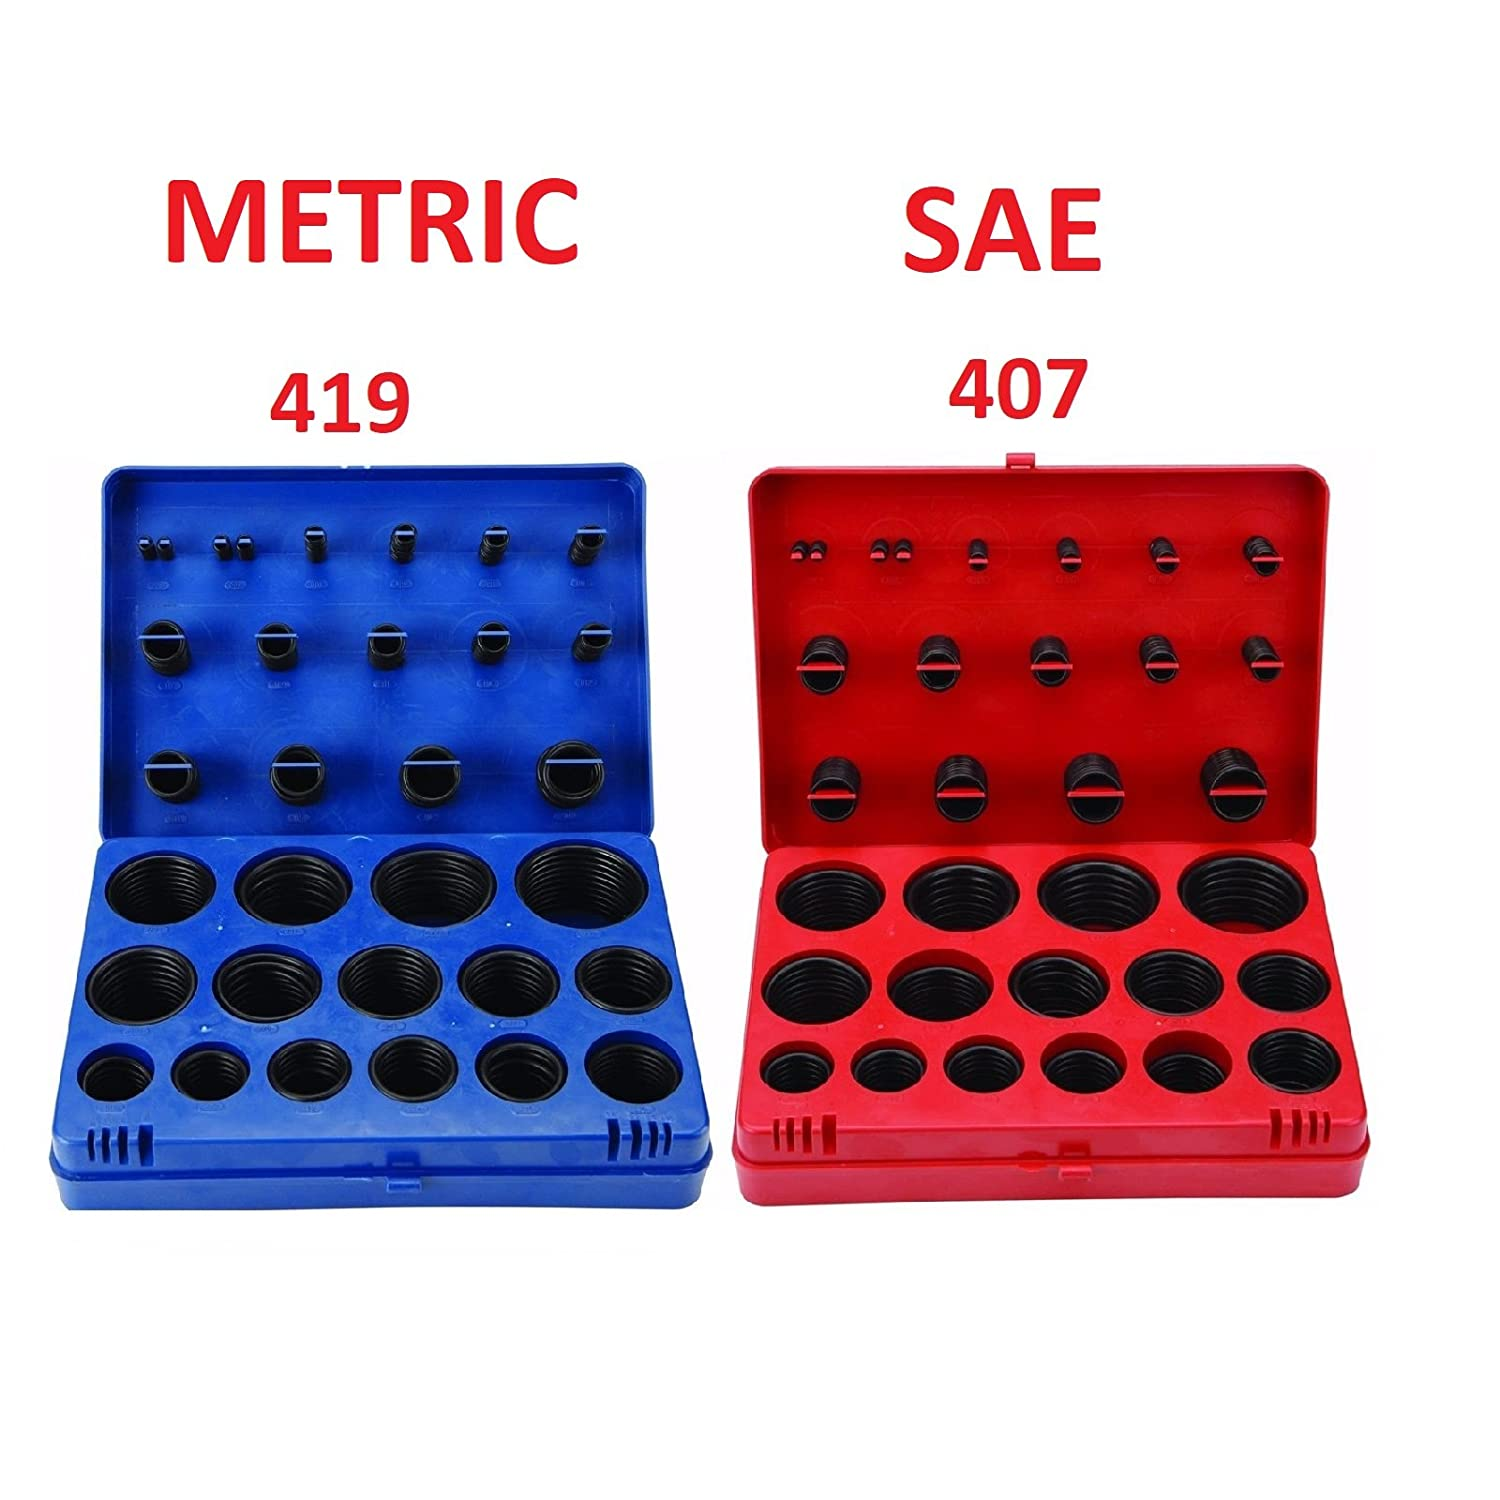 Mechanic,Repairs Automotive SAE Metric O Ring Kit Orings Assortment Kit 495 Pcs with O Ring Pick /& Installation Tools Rubber O-Ring Washer Gasket for Professional Plumbing